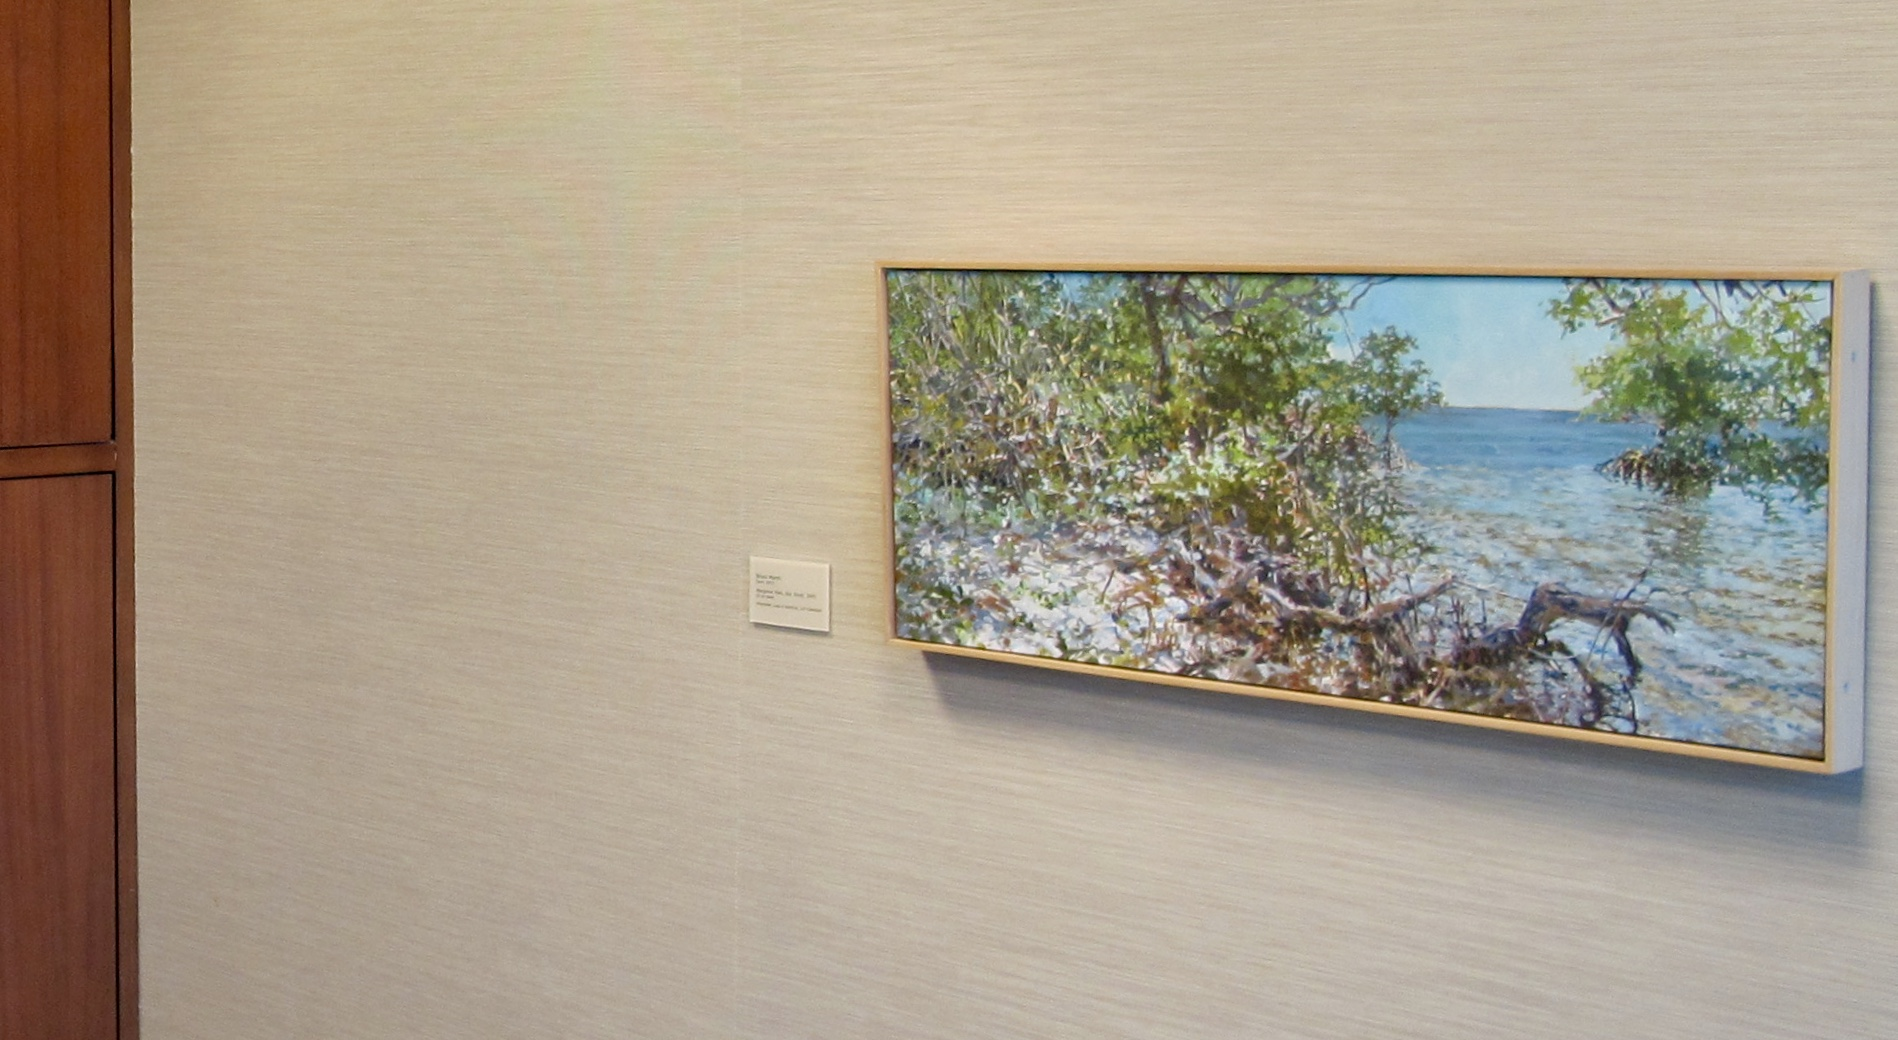 A beloved Bruce Marsh piece, one of the first we purchased for the collection.